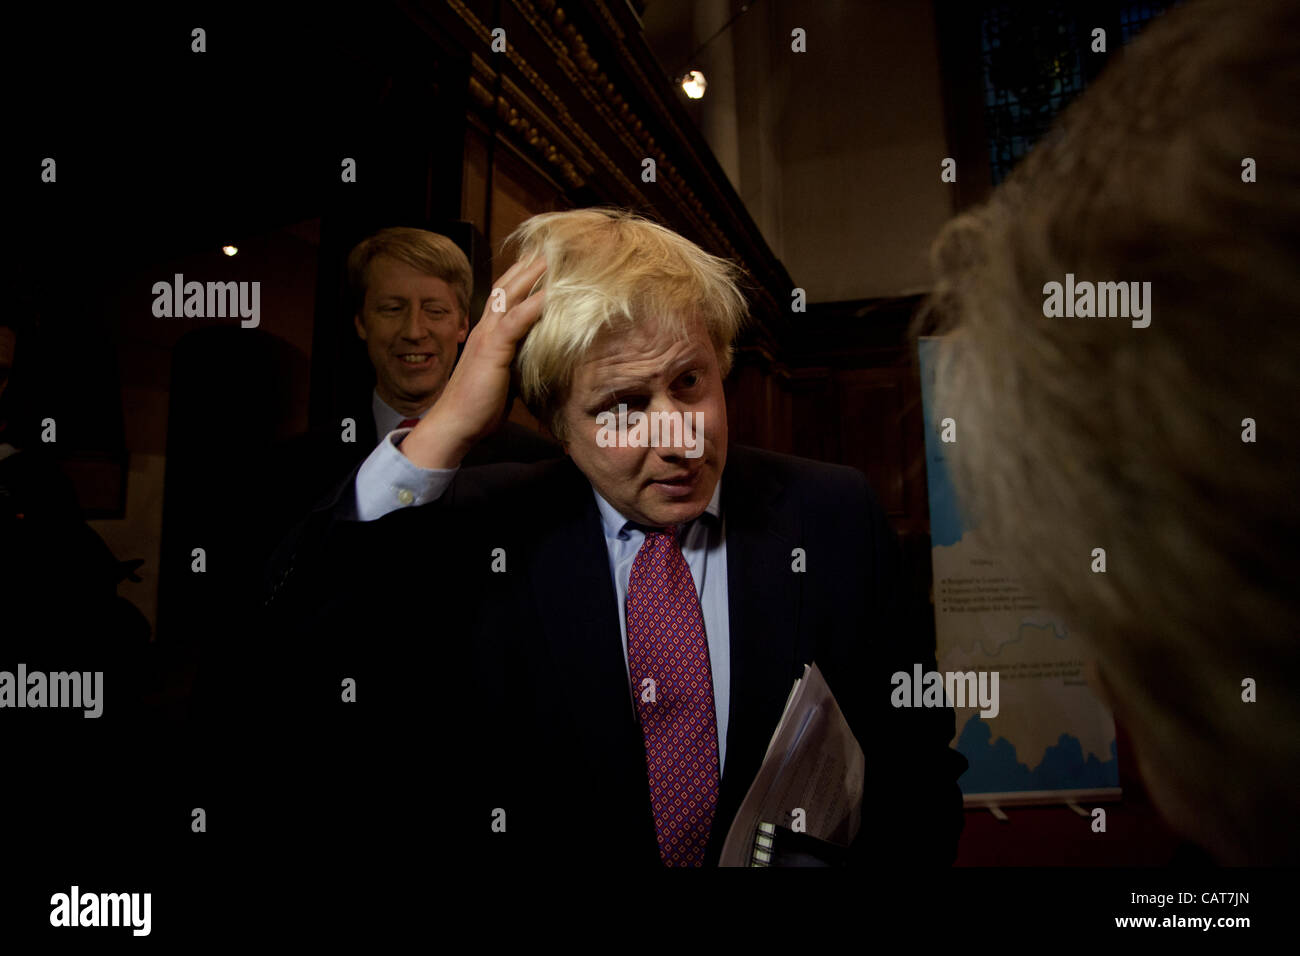 London, UK. 18 April, 2012. Mayor of London Boris Johnson answers a question from a member of the public after the - Stock Image